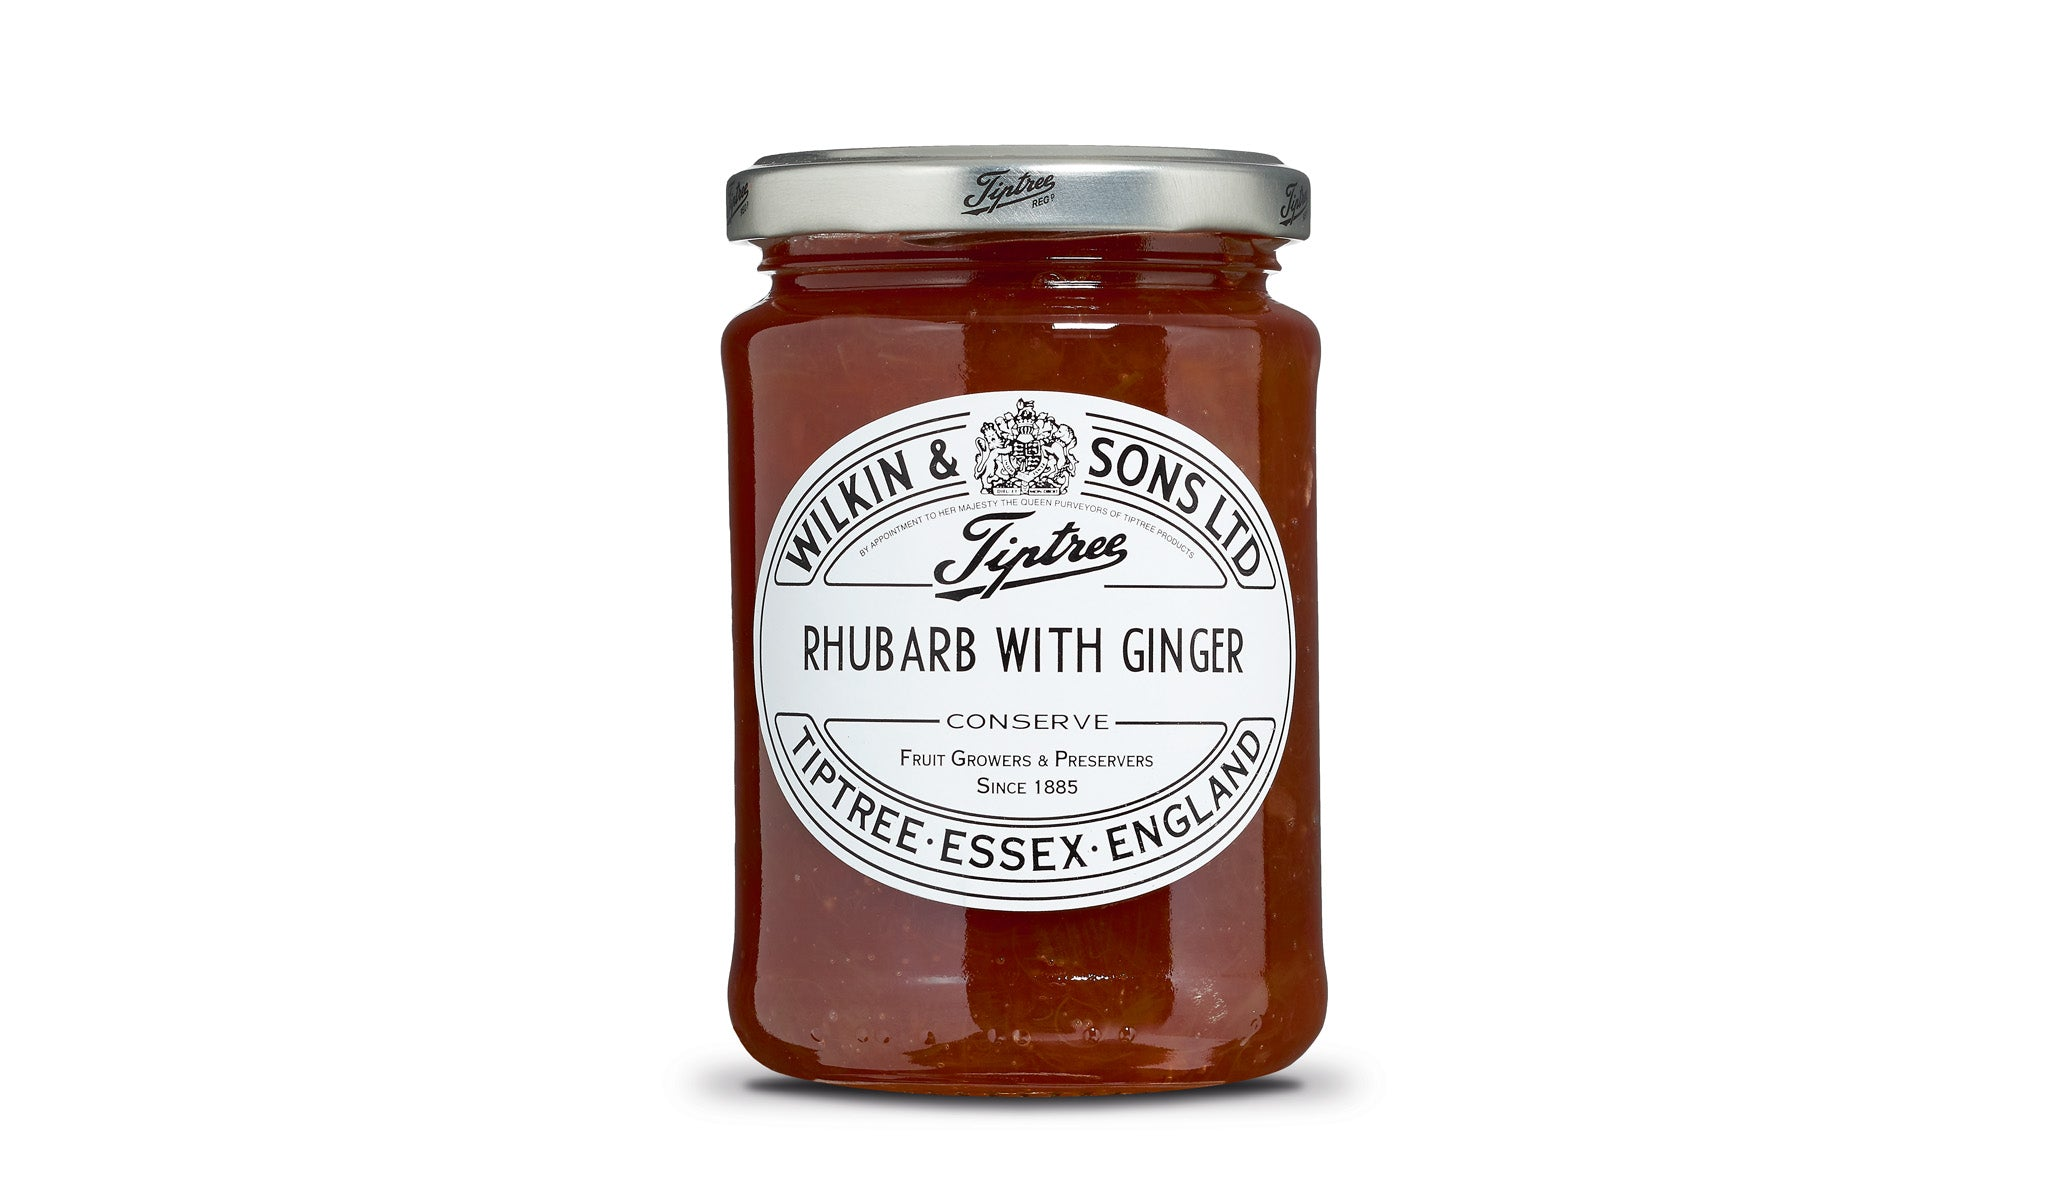 Wilkin & Sons English Rhubarb & Ginger Conserve 340g